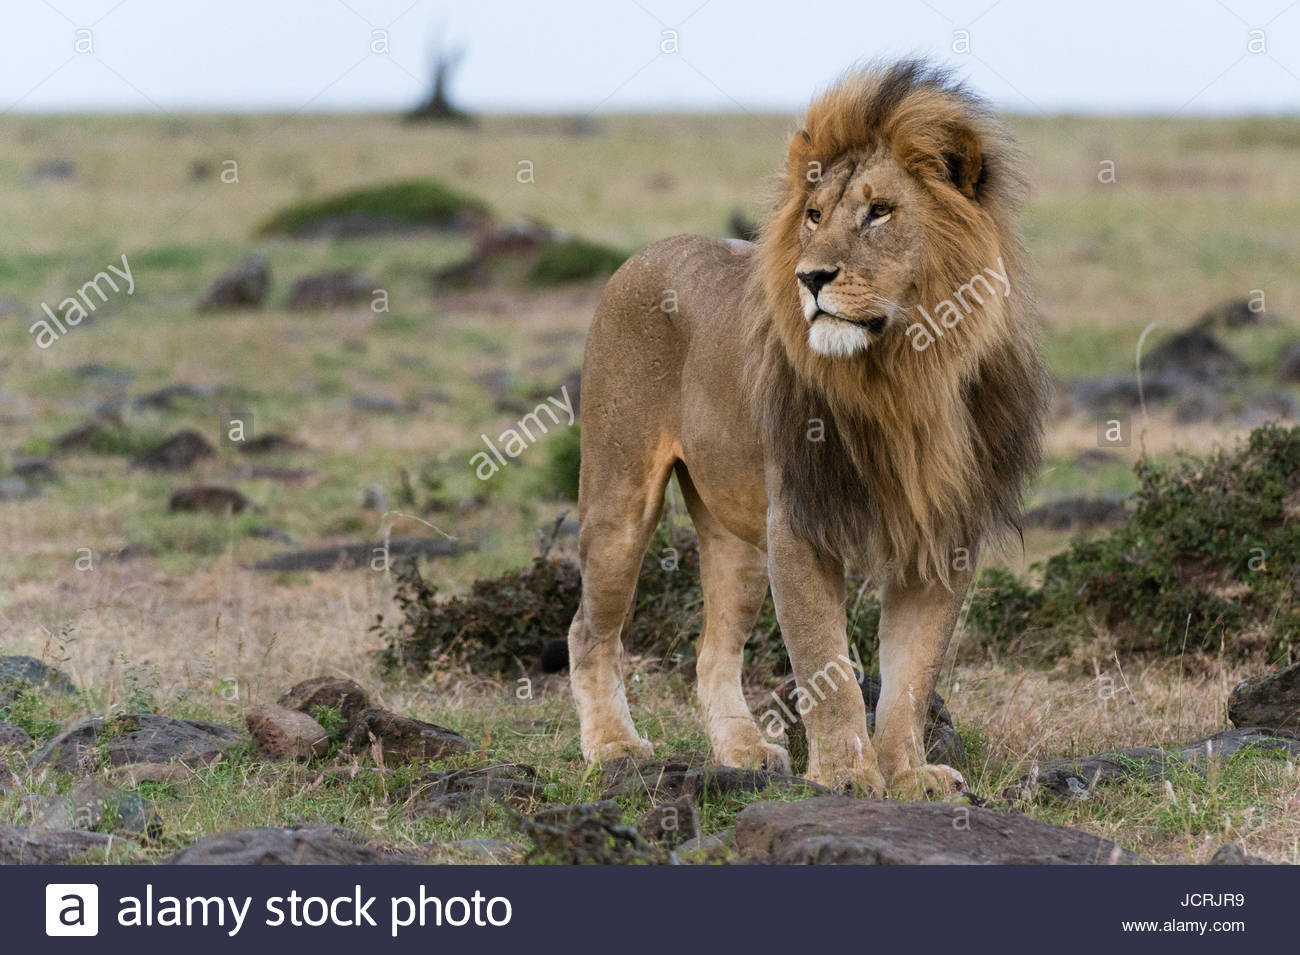 A male lion, Panthera leo, looking at the surroundings. - Stock Image